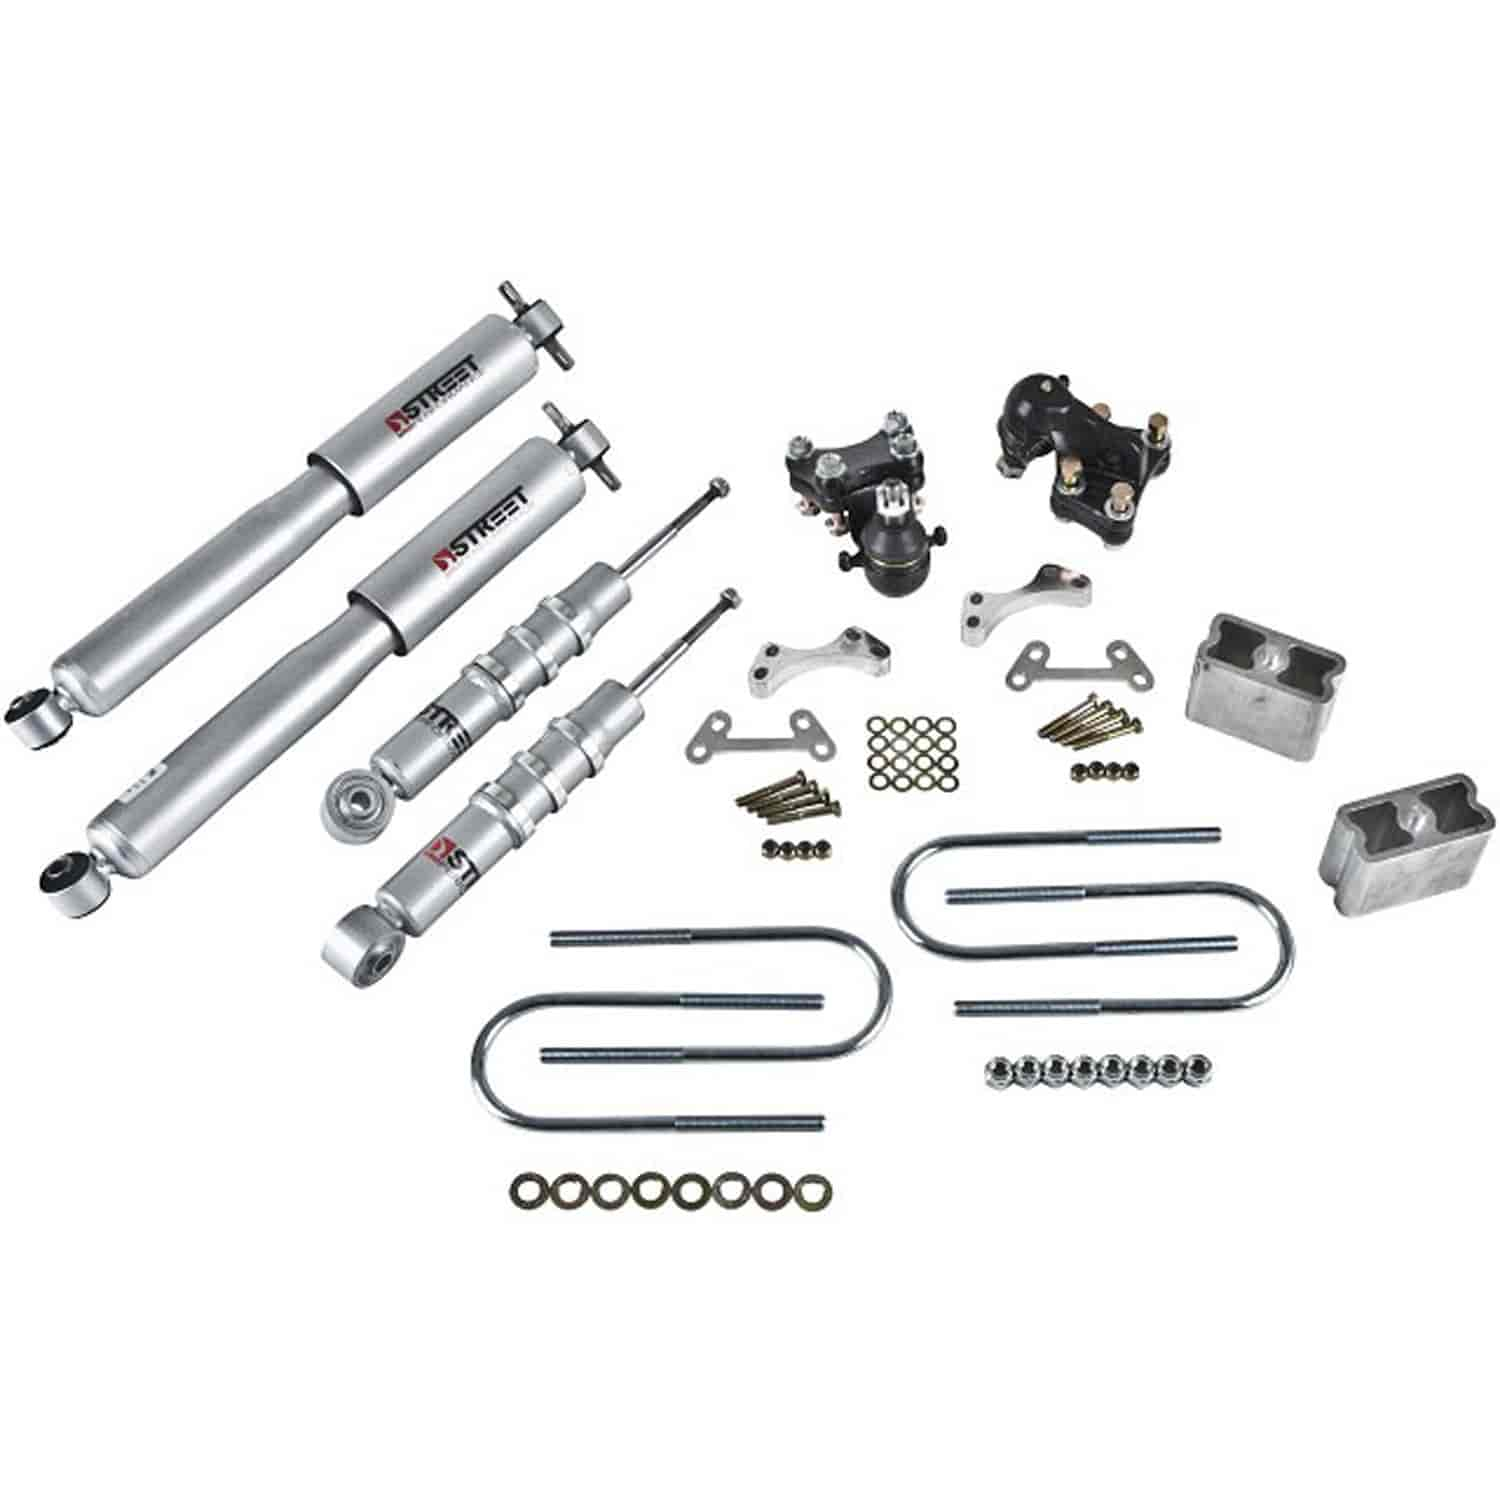 Belltech 603sp Complete Lowering Kit For Chevy